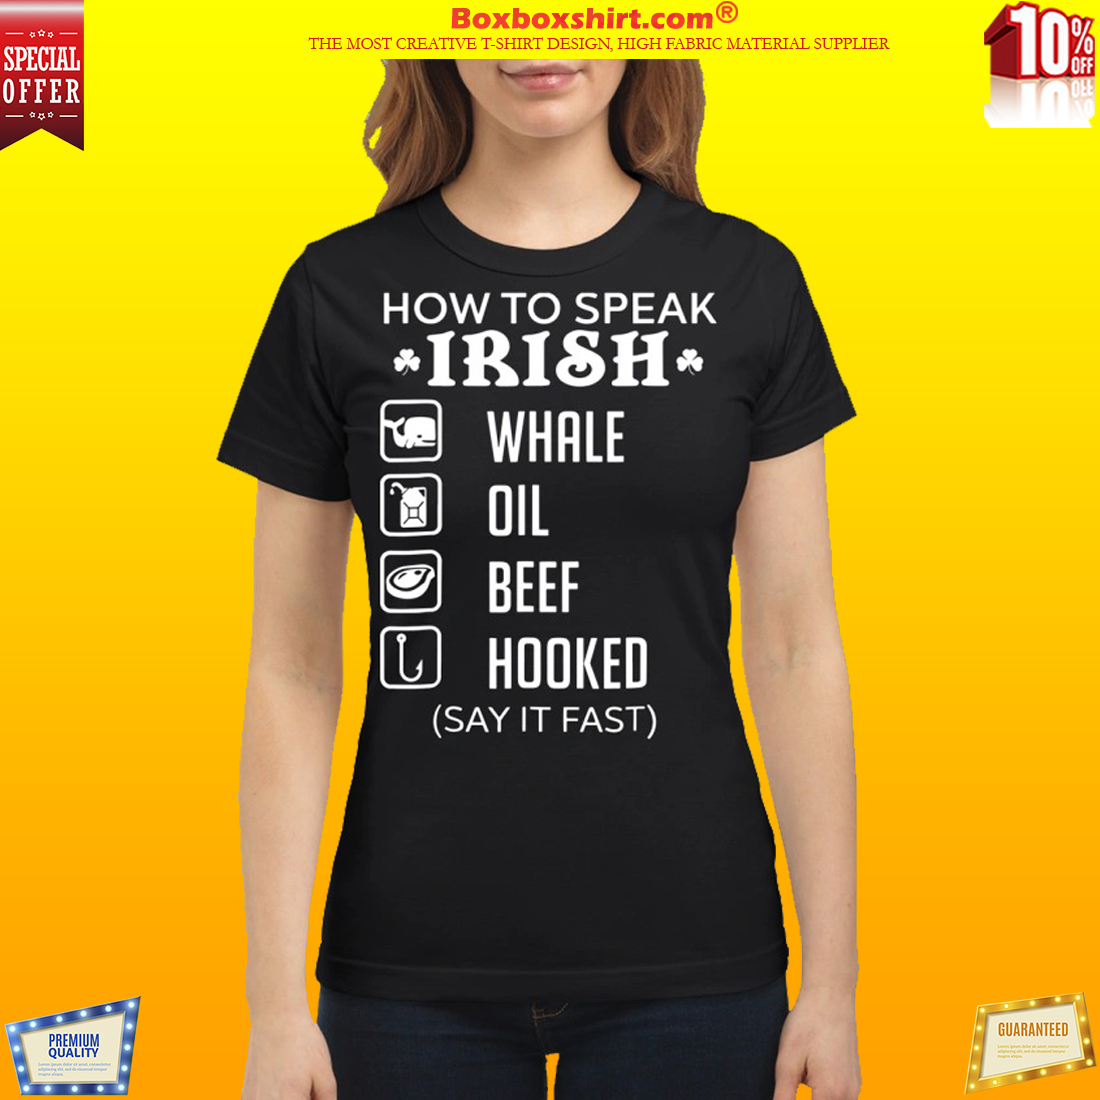 How To Speak Irish Whale Oil Beef Hooked Classic Shirt